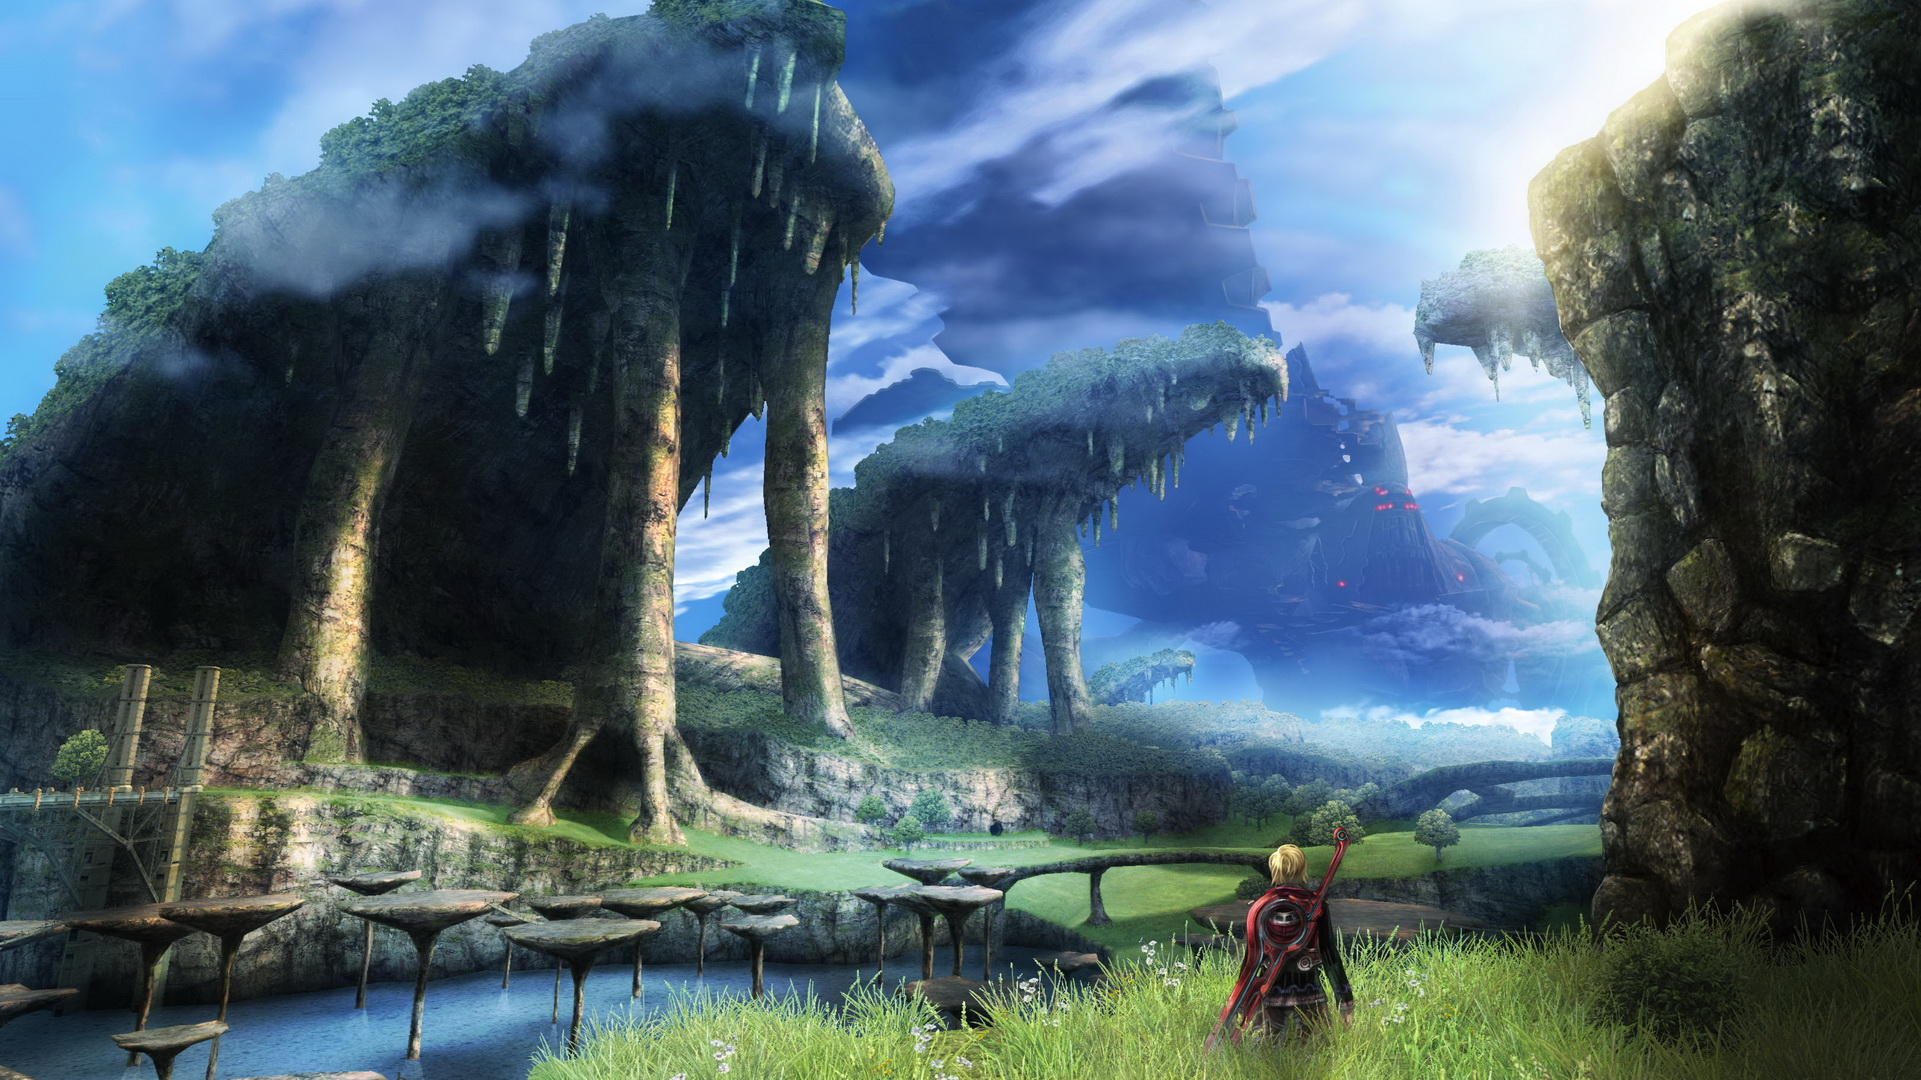 Xenoblade Chronicles HD Wallpapers and Background Images   stmednet 1921x1080